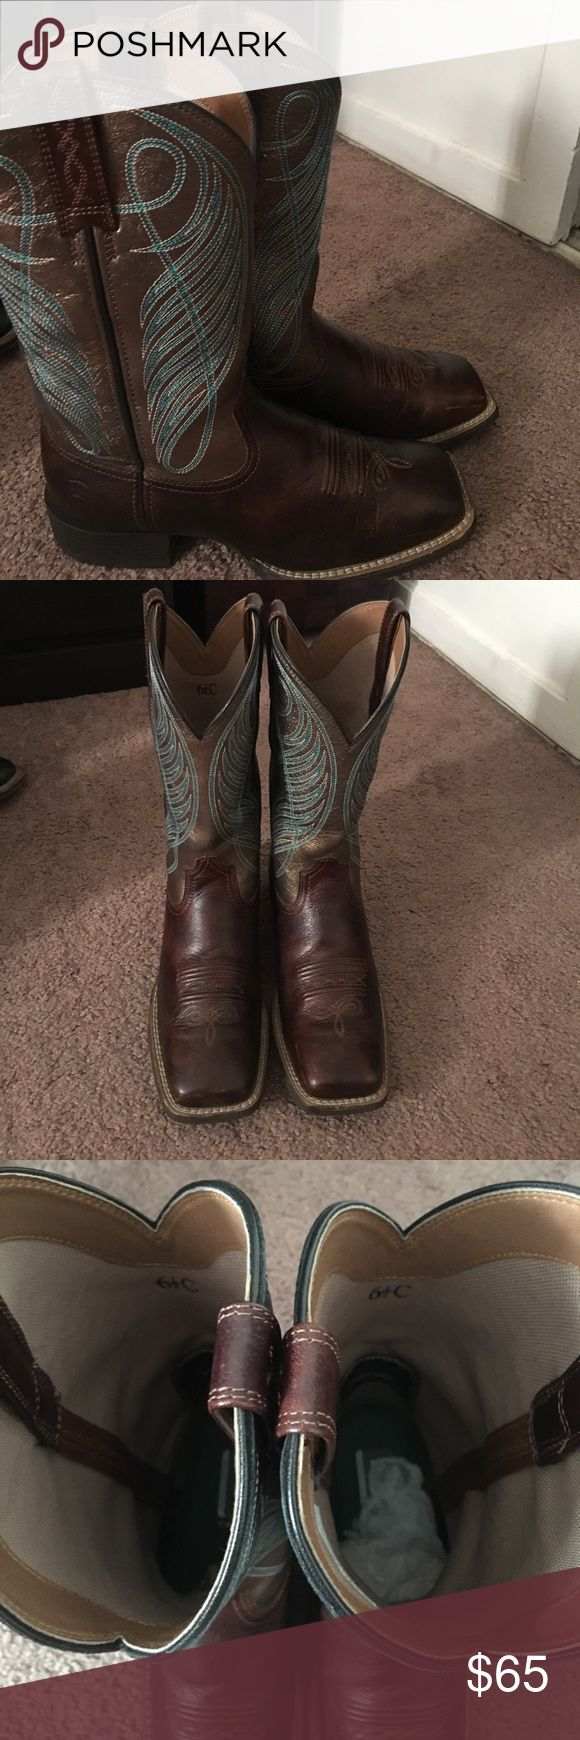 Squared toe Ariat boots Ariat sqared toe boots Ariat Shoes